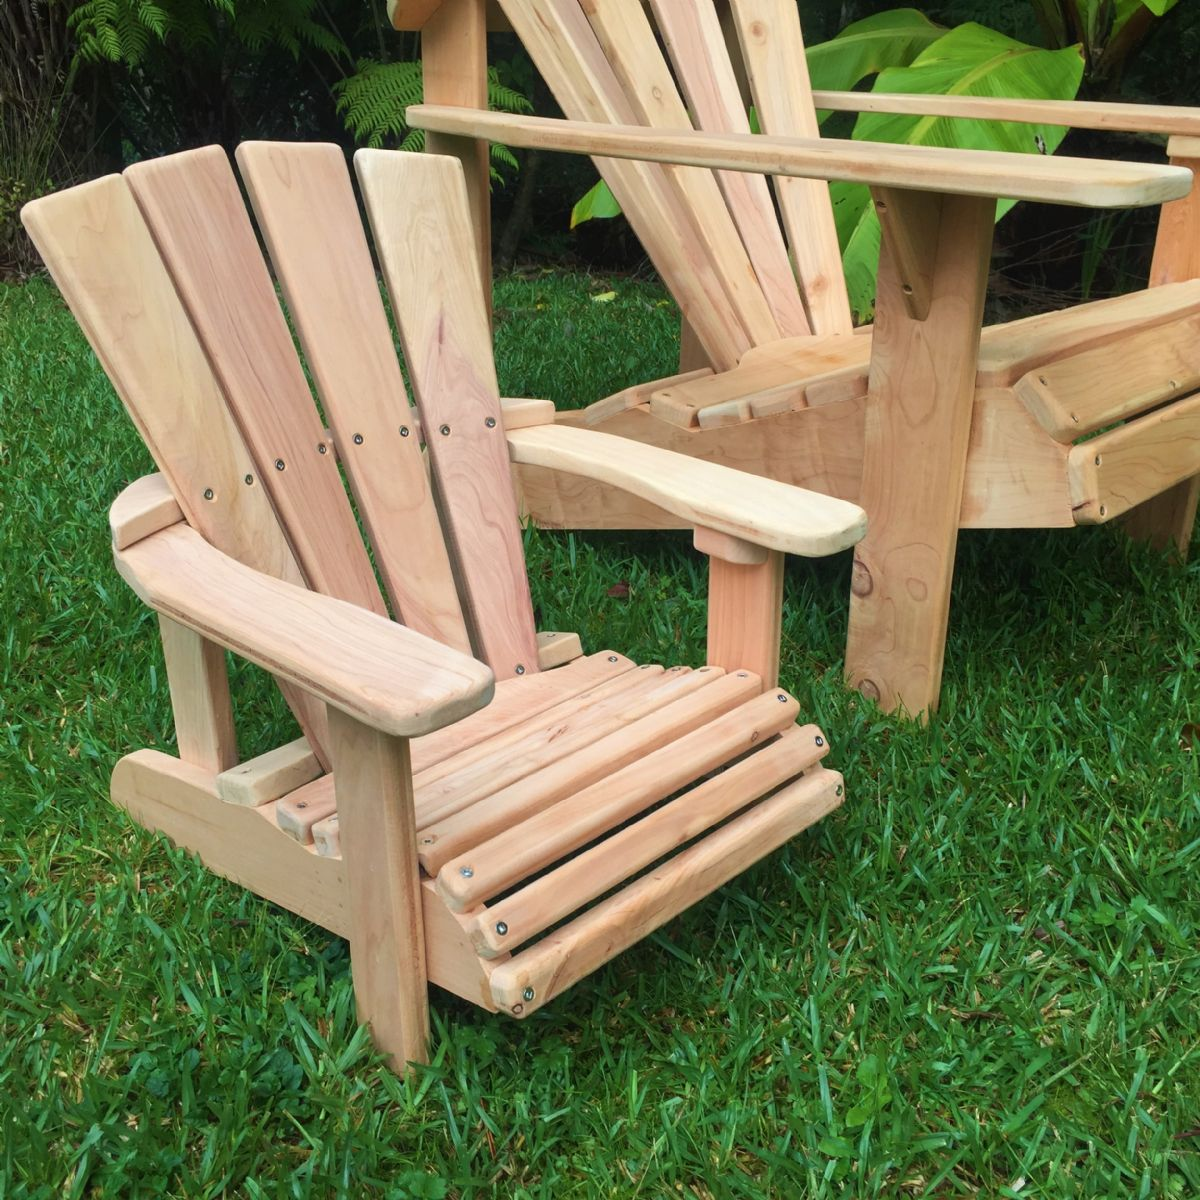 MACROCARPA CAPE COD / ADIRONDACK CHAIR: Child's